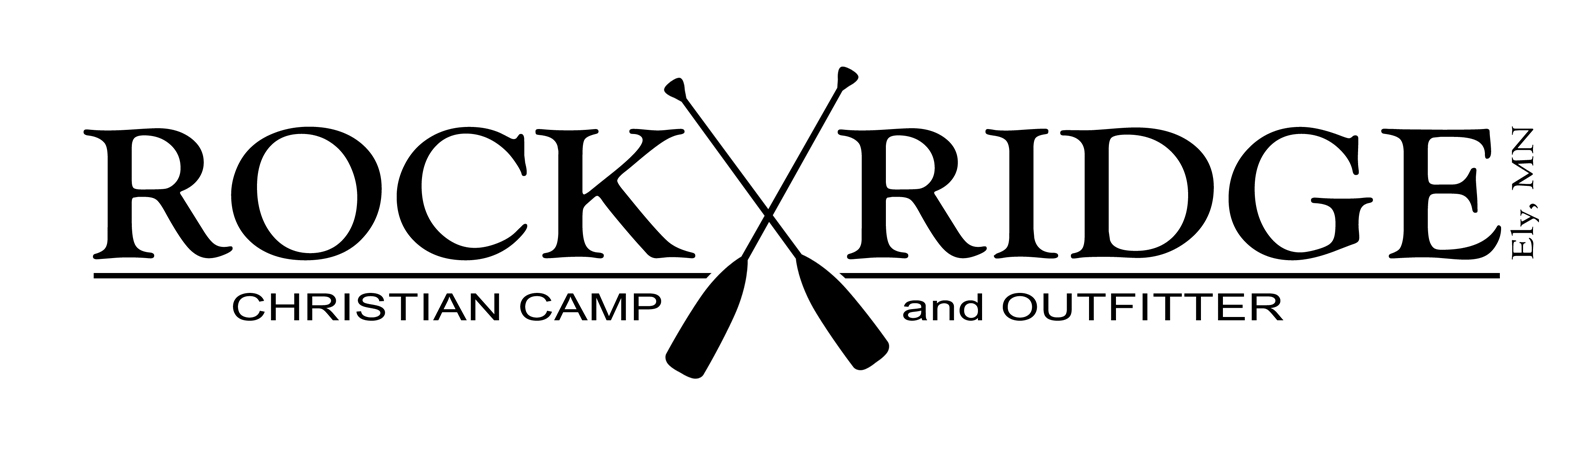 Rock Ridge Camp and Outfitter